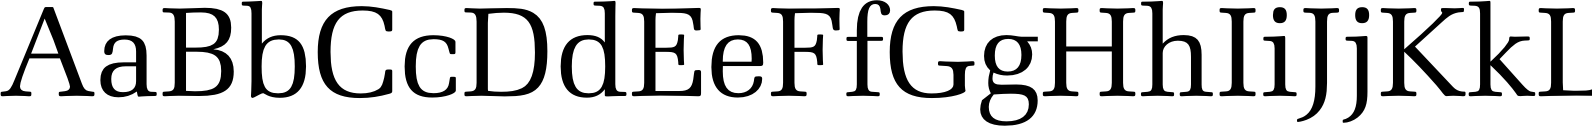 ZapfElliptical711 BT Regular Font